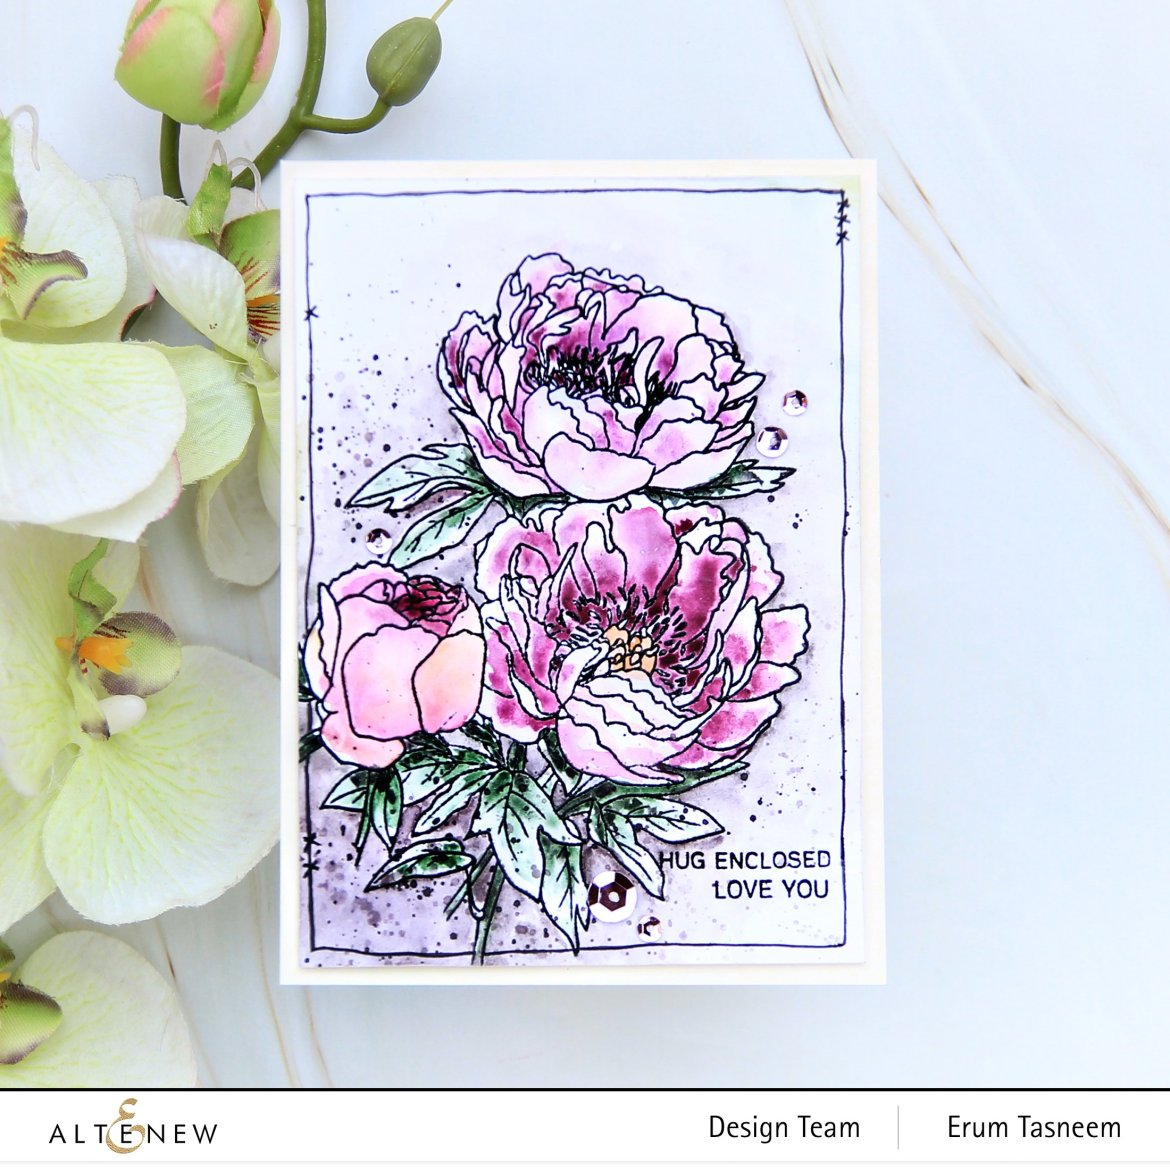 Altenew PAF Coral Sunset Stamp Set | Erum Tasneem | @pr0digy0